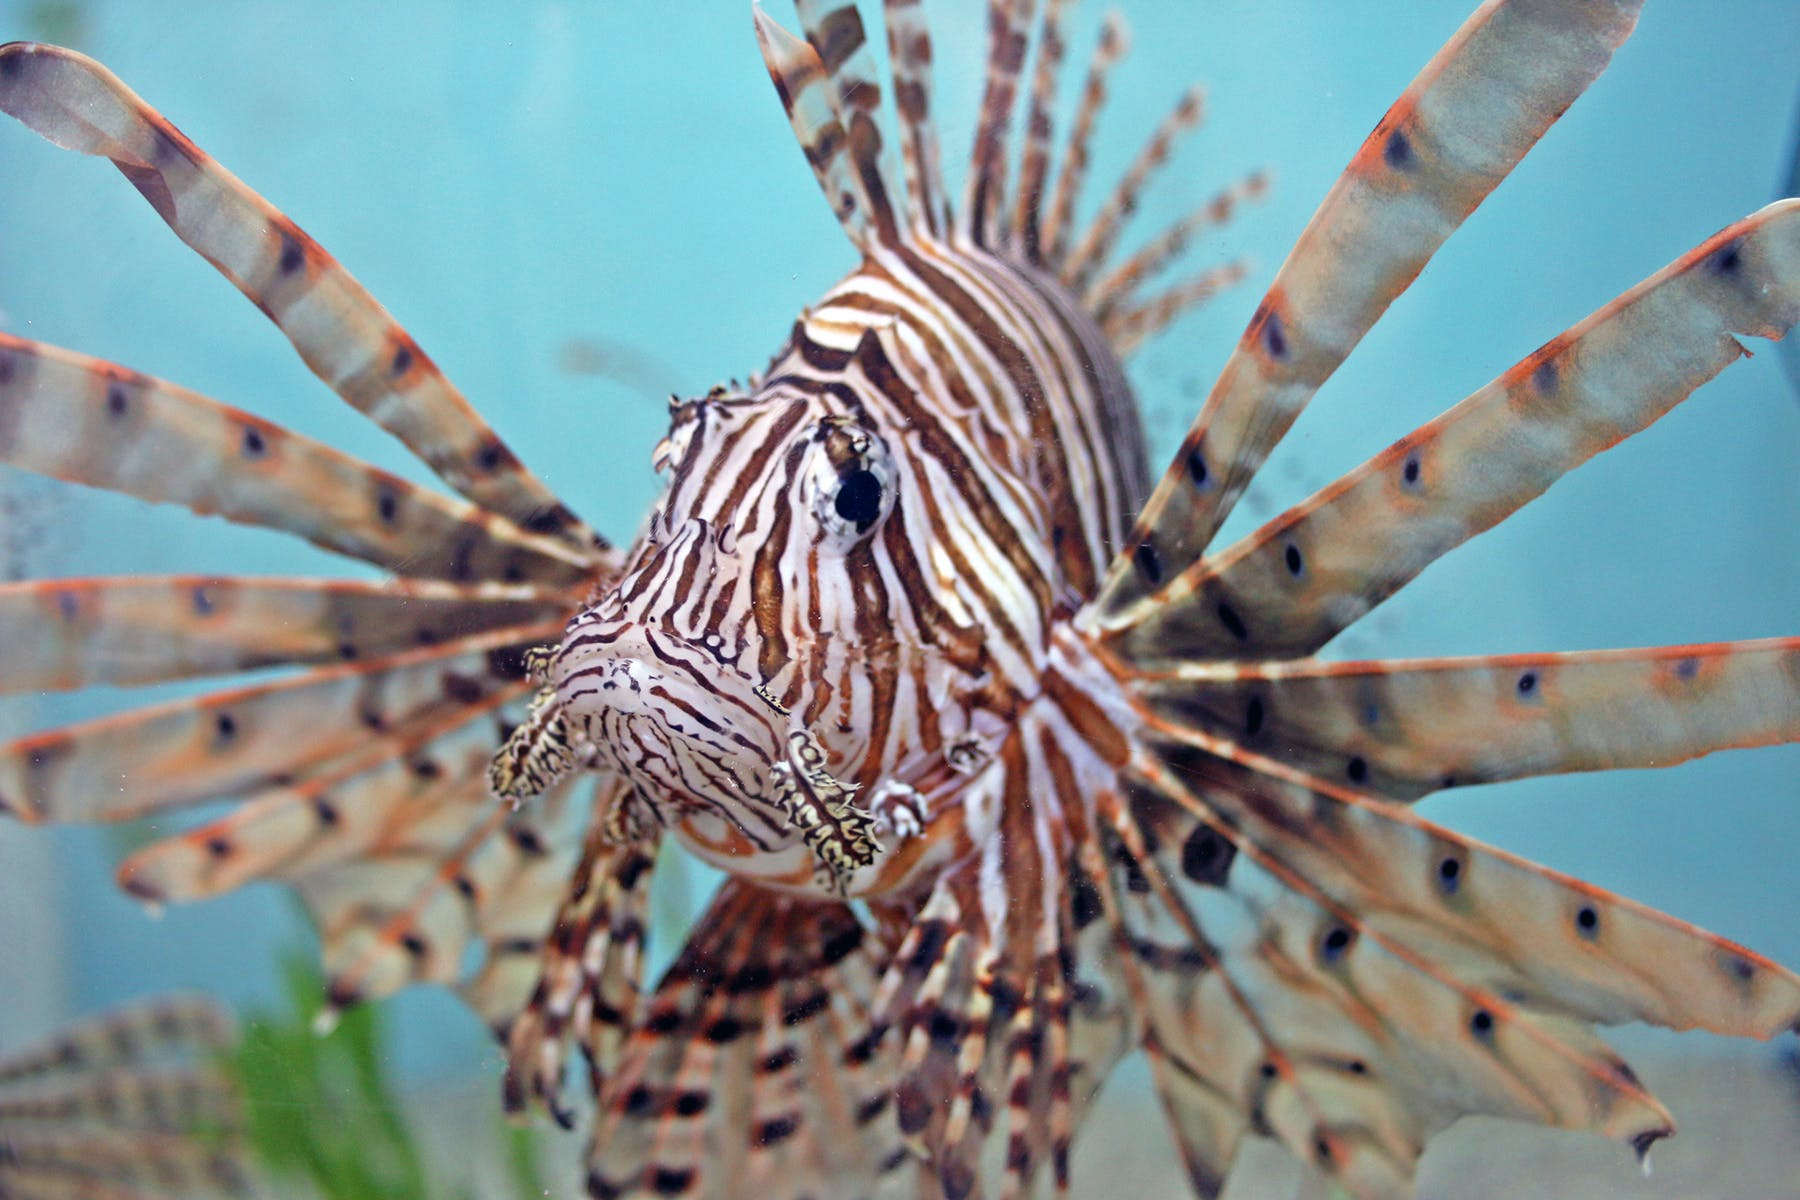 A lionfish with it's fins fanned out and spines visible